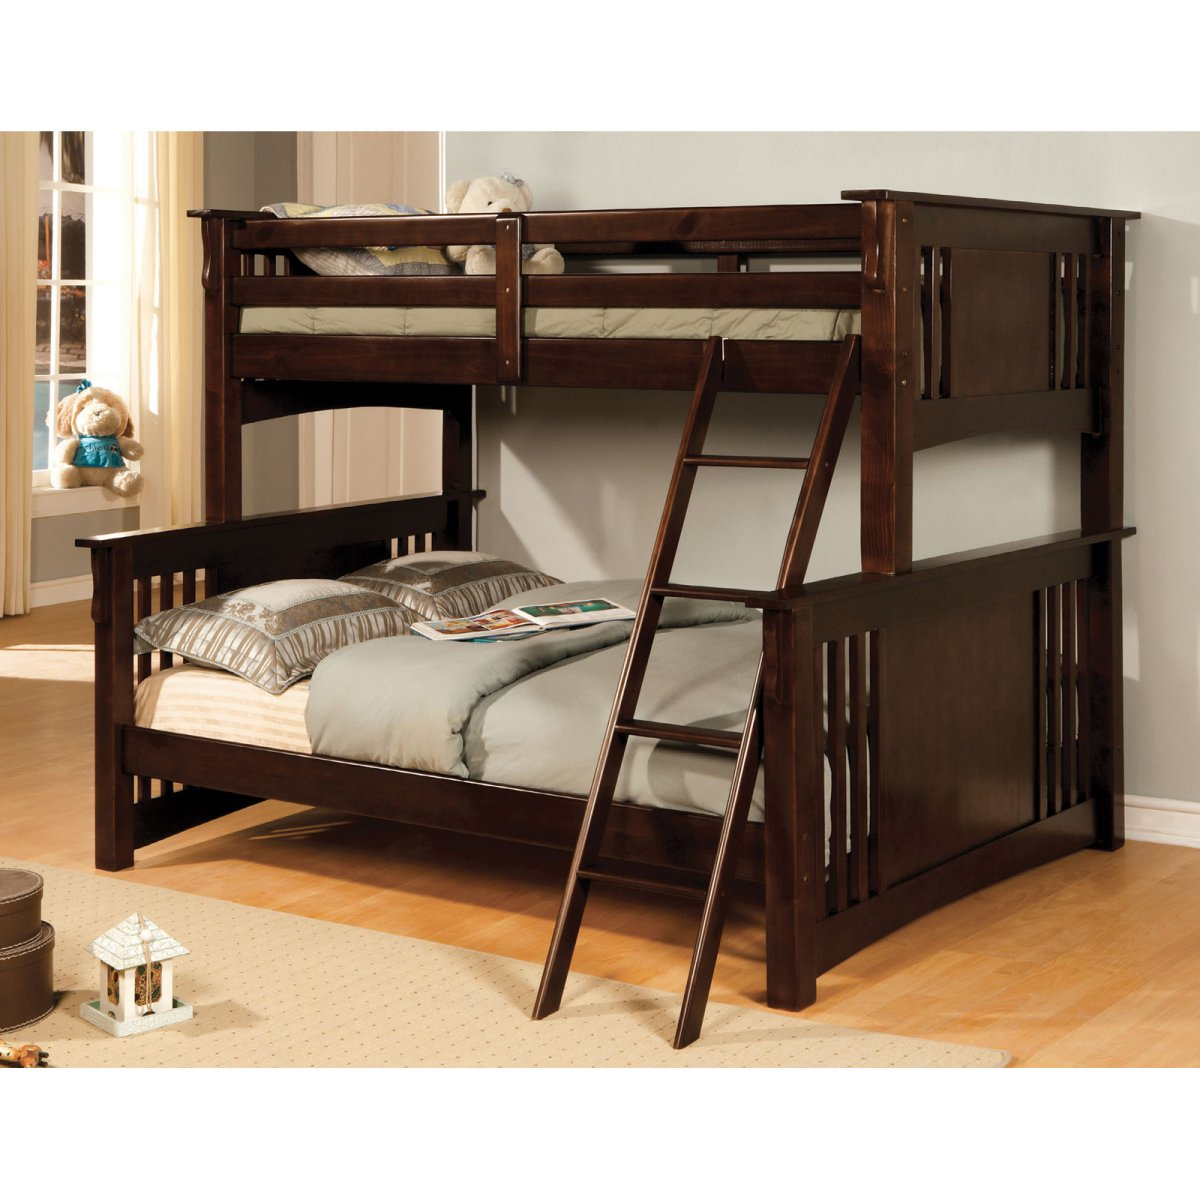 mission style bedroom furniture black photo - 6